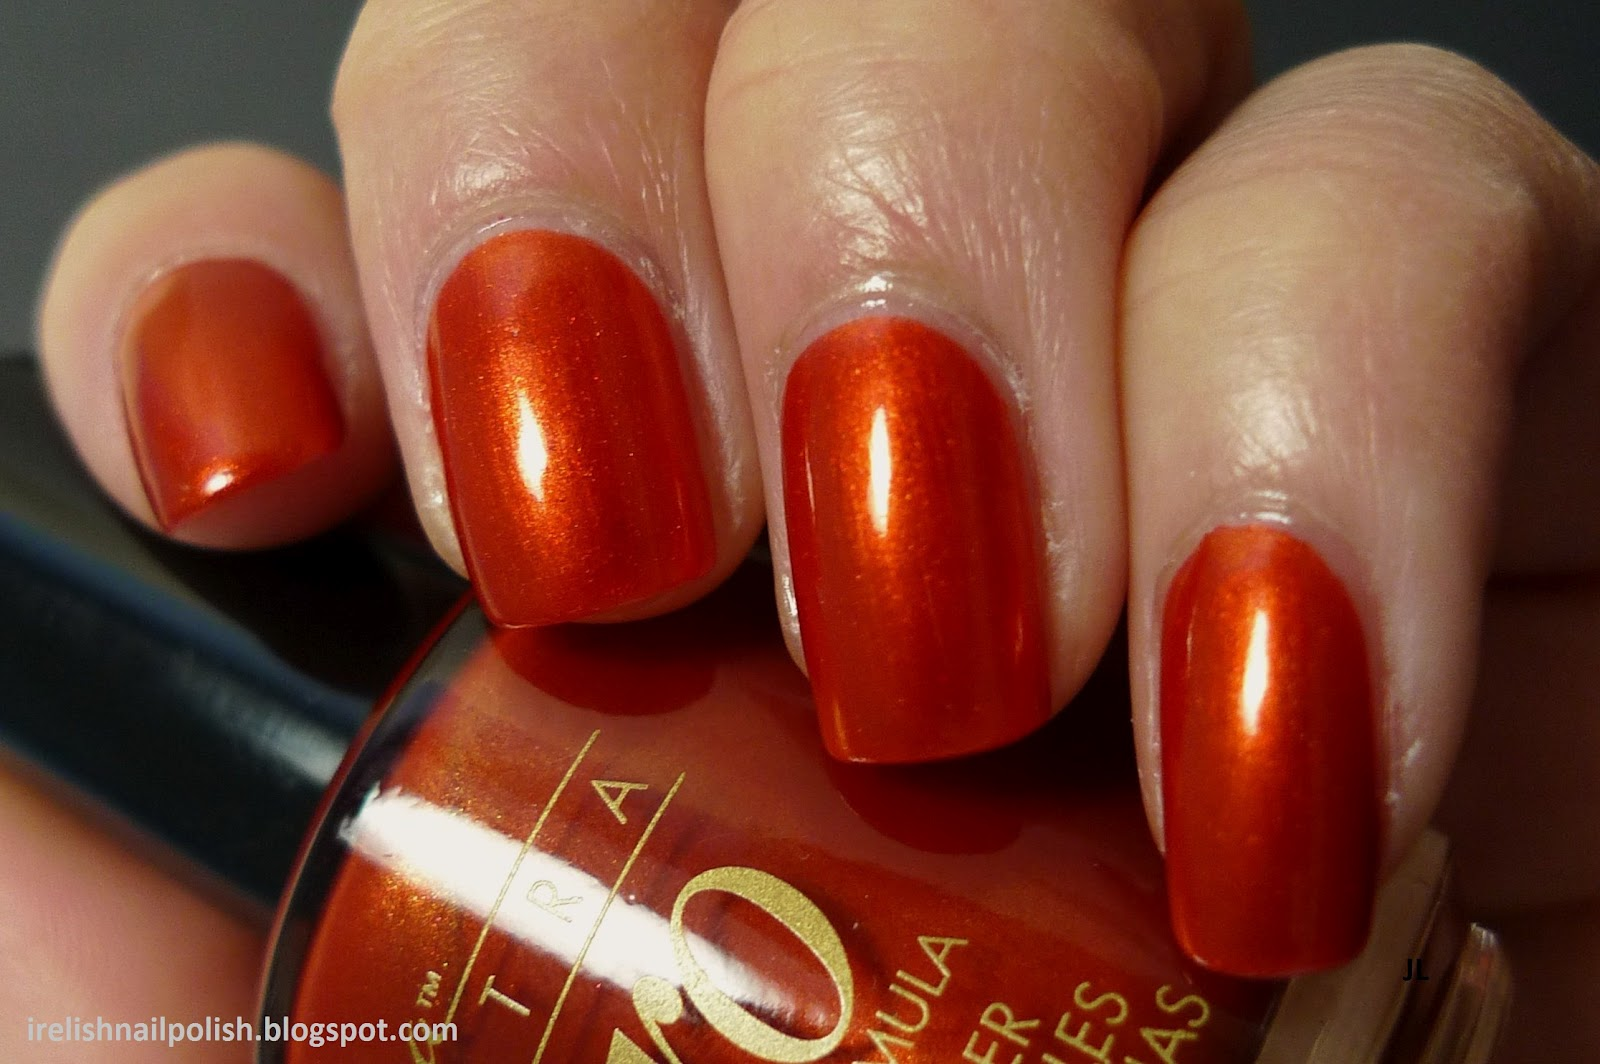 I Relish Nail Polish!: Nina Ultra Pro - Burnished Bronze